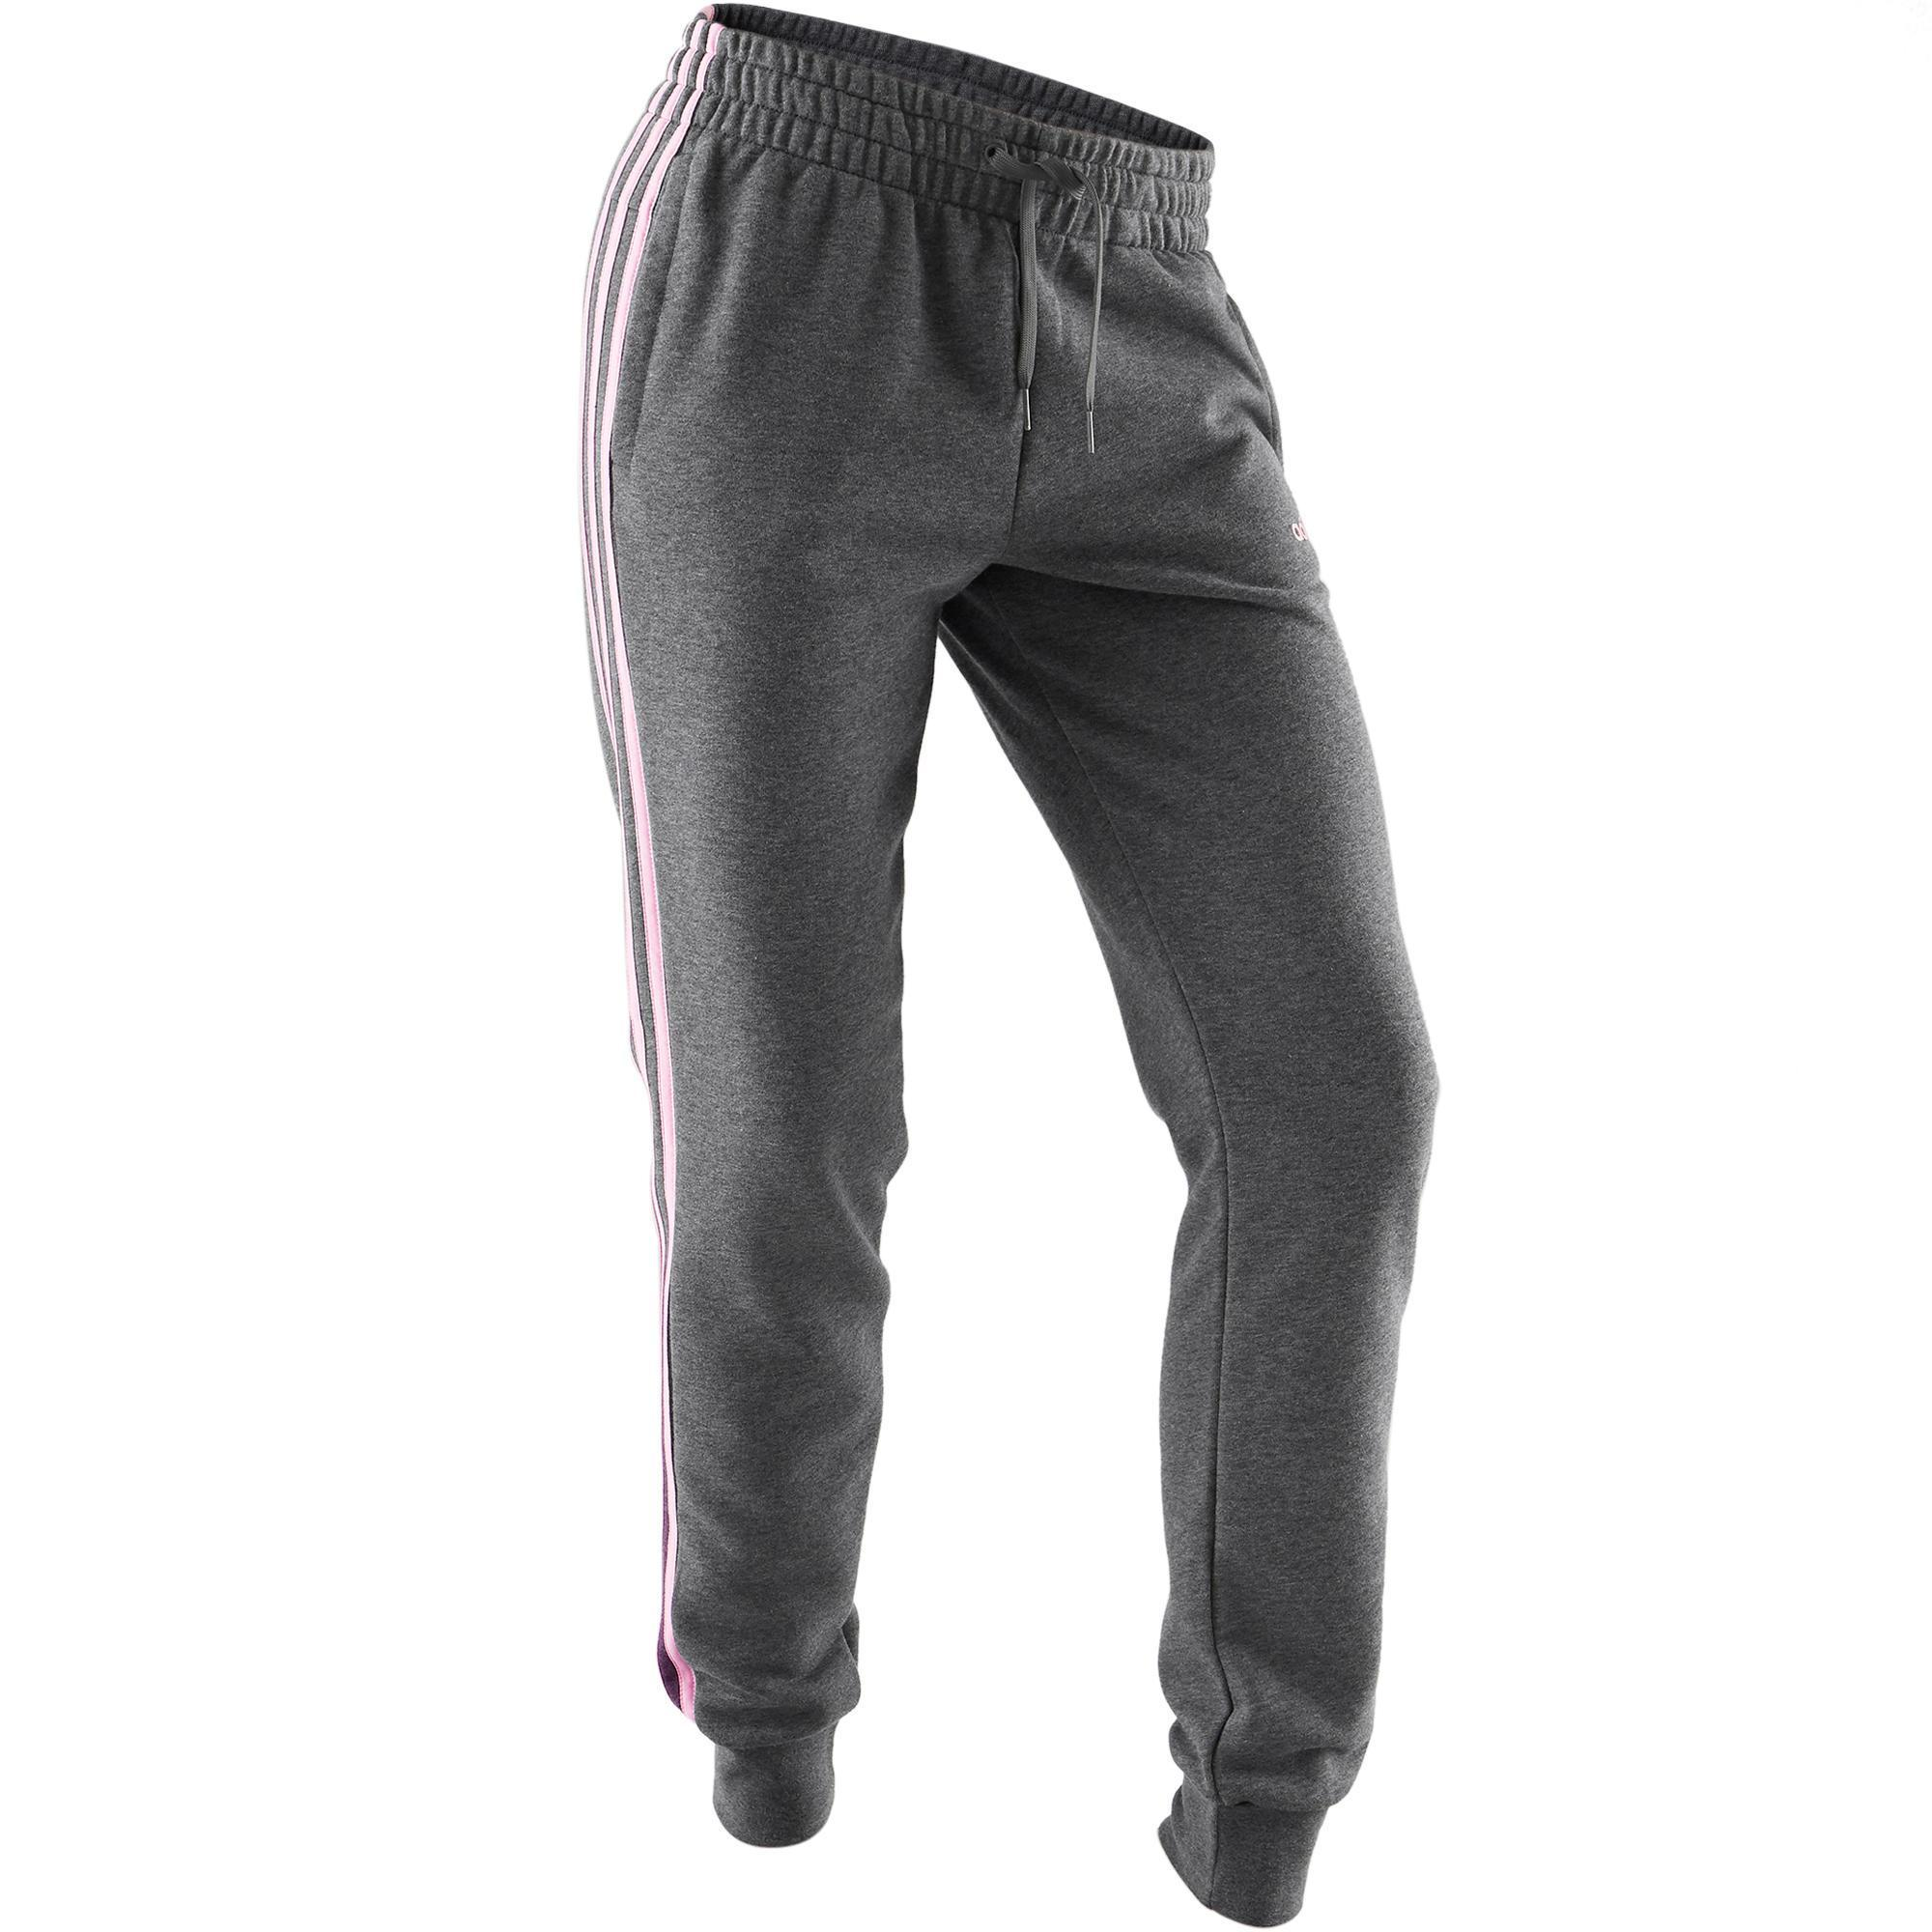 e34669f25feb Pantalones Adidas - Decathlon